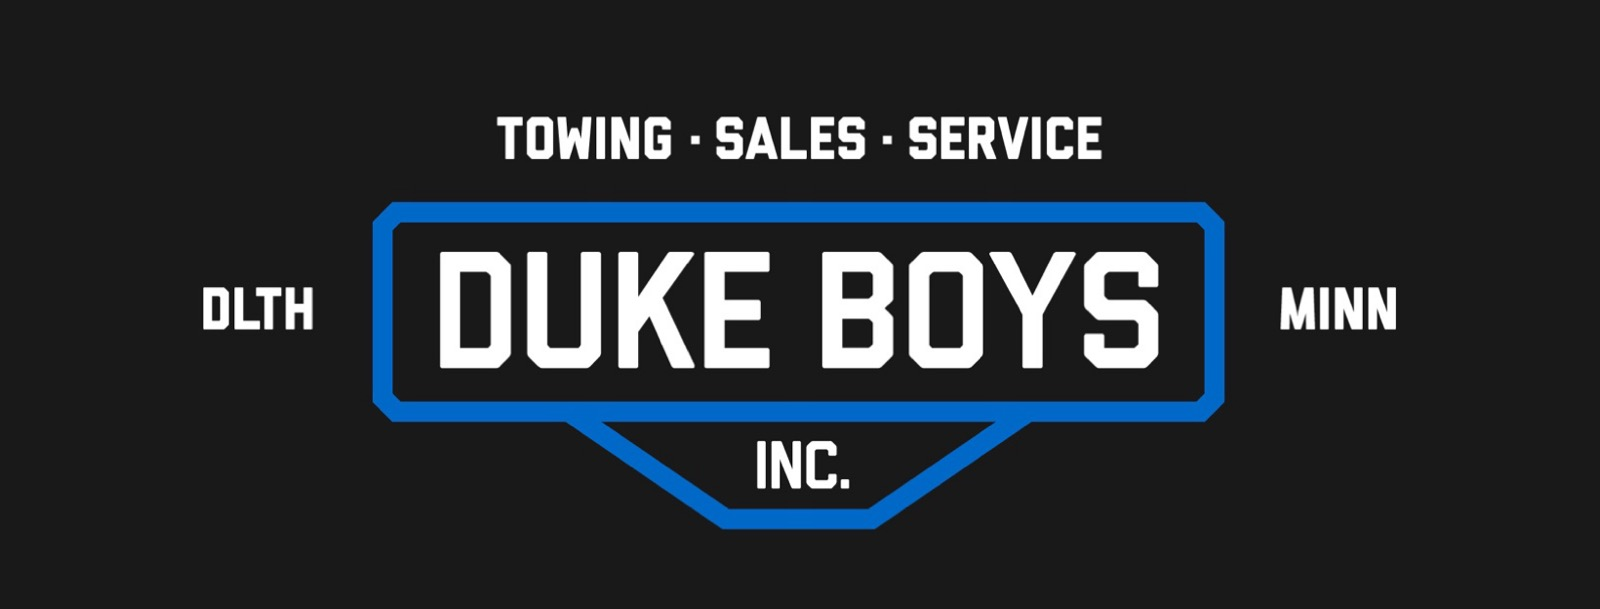 Duke Boys Auto Sales